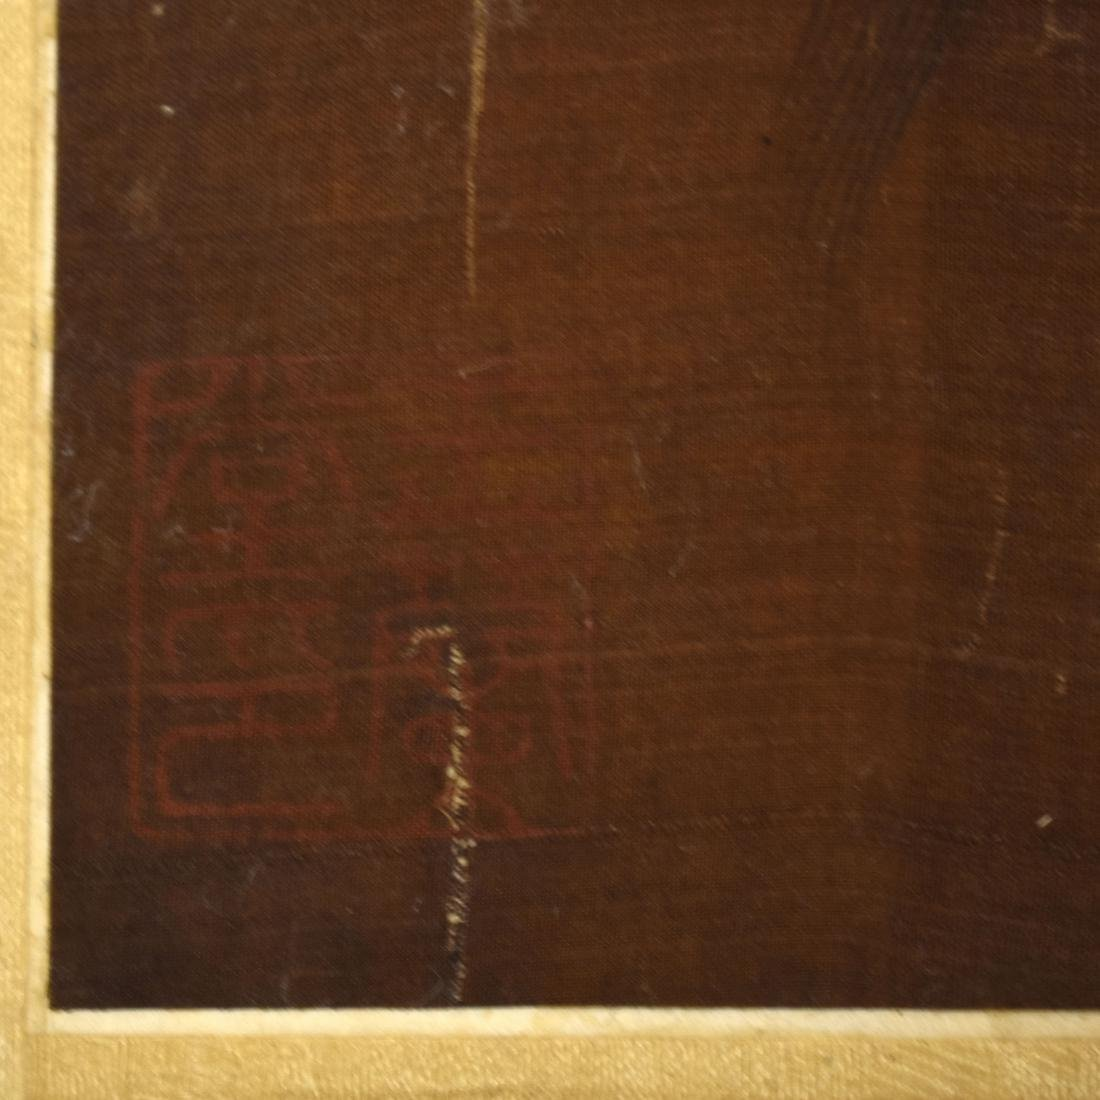 QING DYNASTY PAINTING OF HORSE RIDING WARRIOR - 9